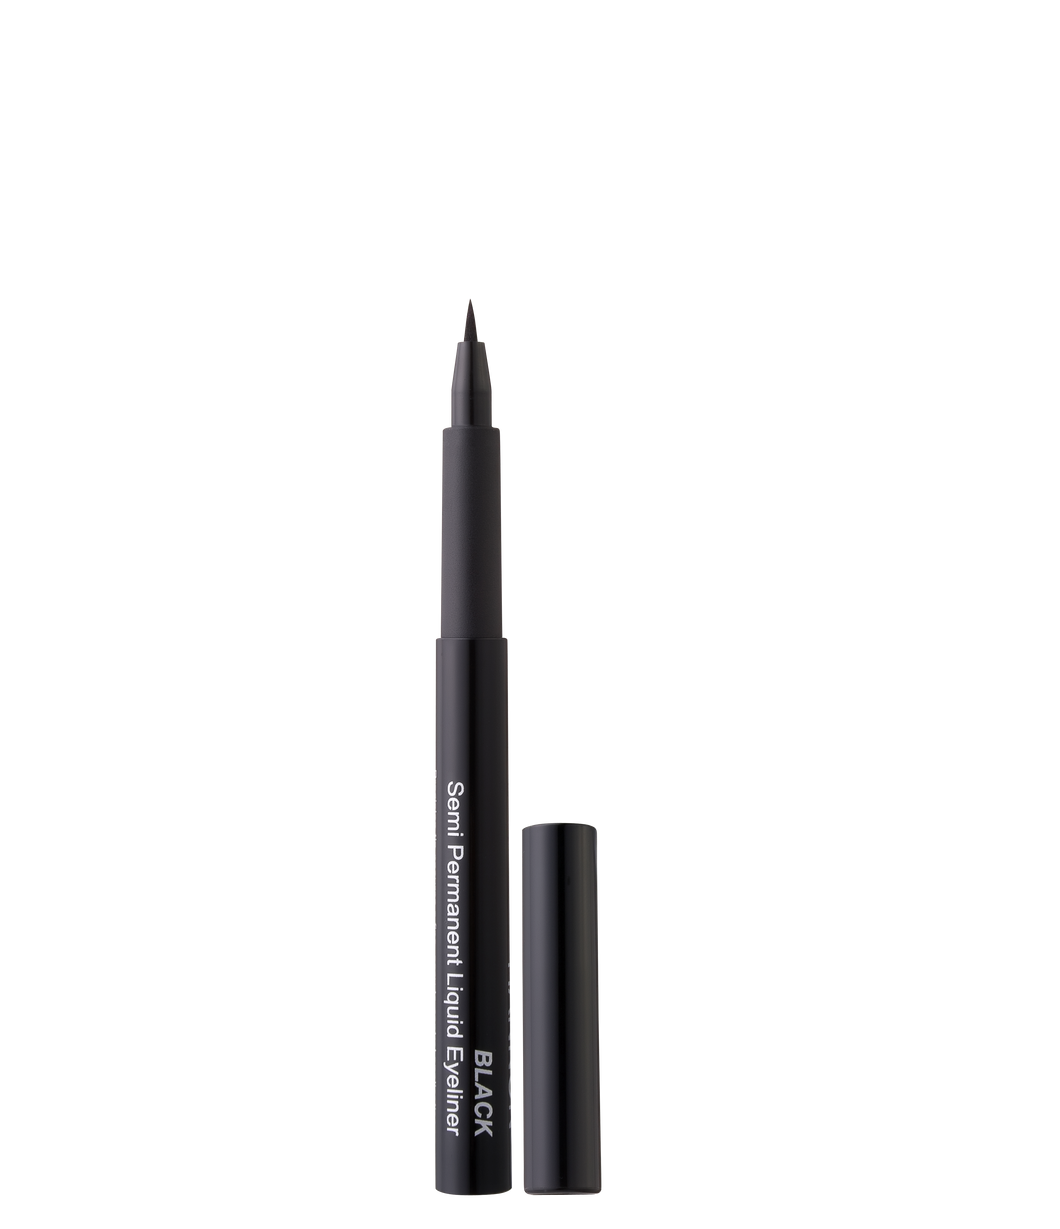 Hannon Semi-Permanent Liquid Eyeliner Black